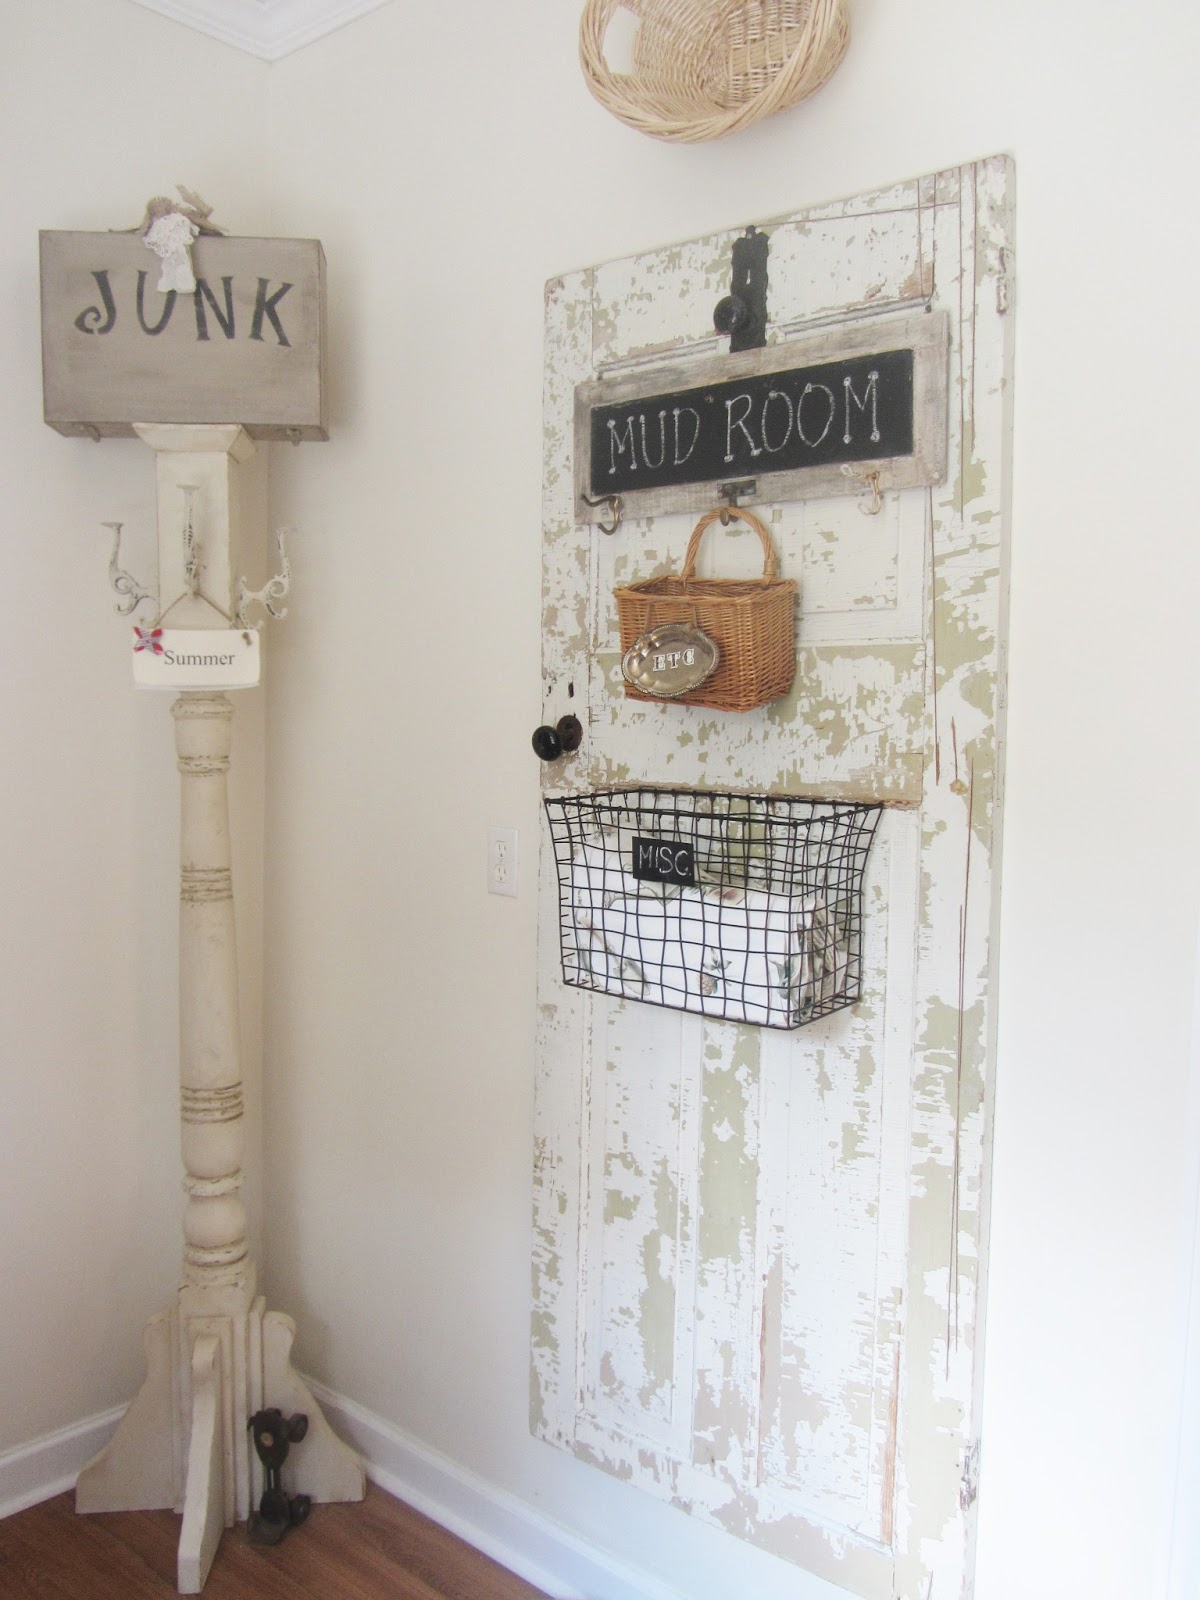 i got the corner coat hanger post from my trip last year to junk bonanza of course i have an old chippy door you know me and my love of old chic laundry room